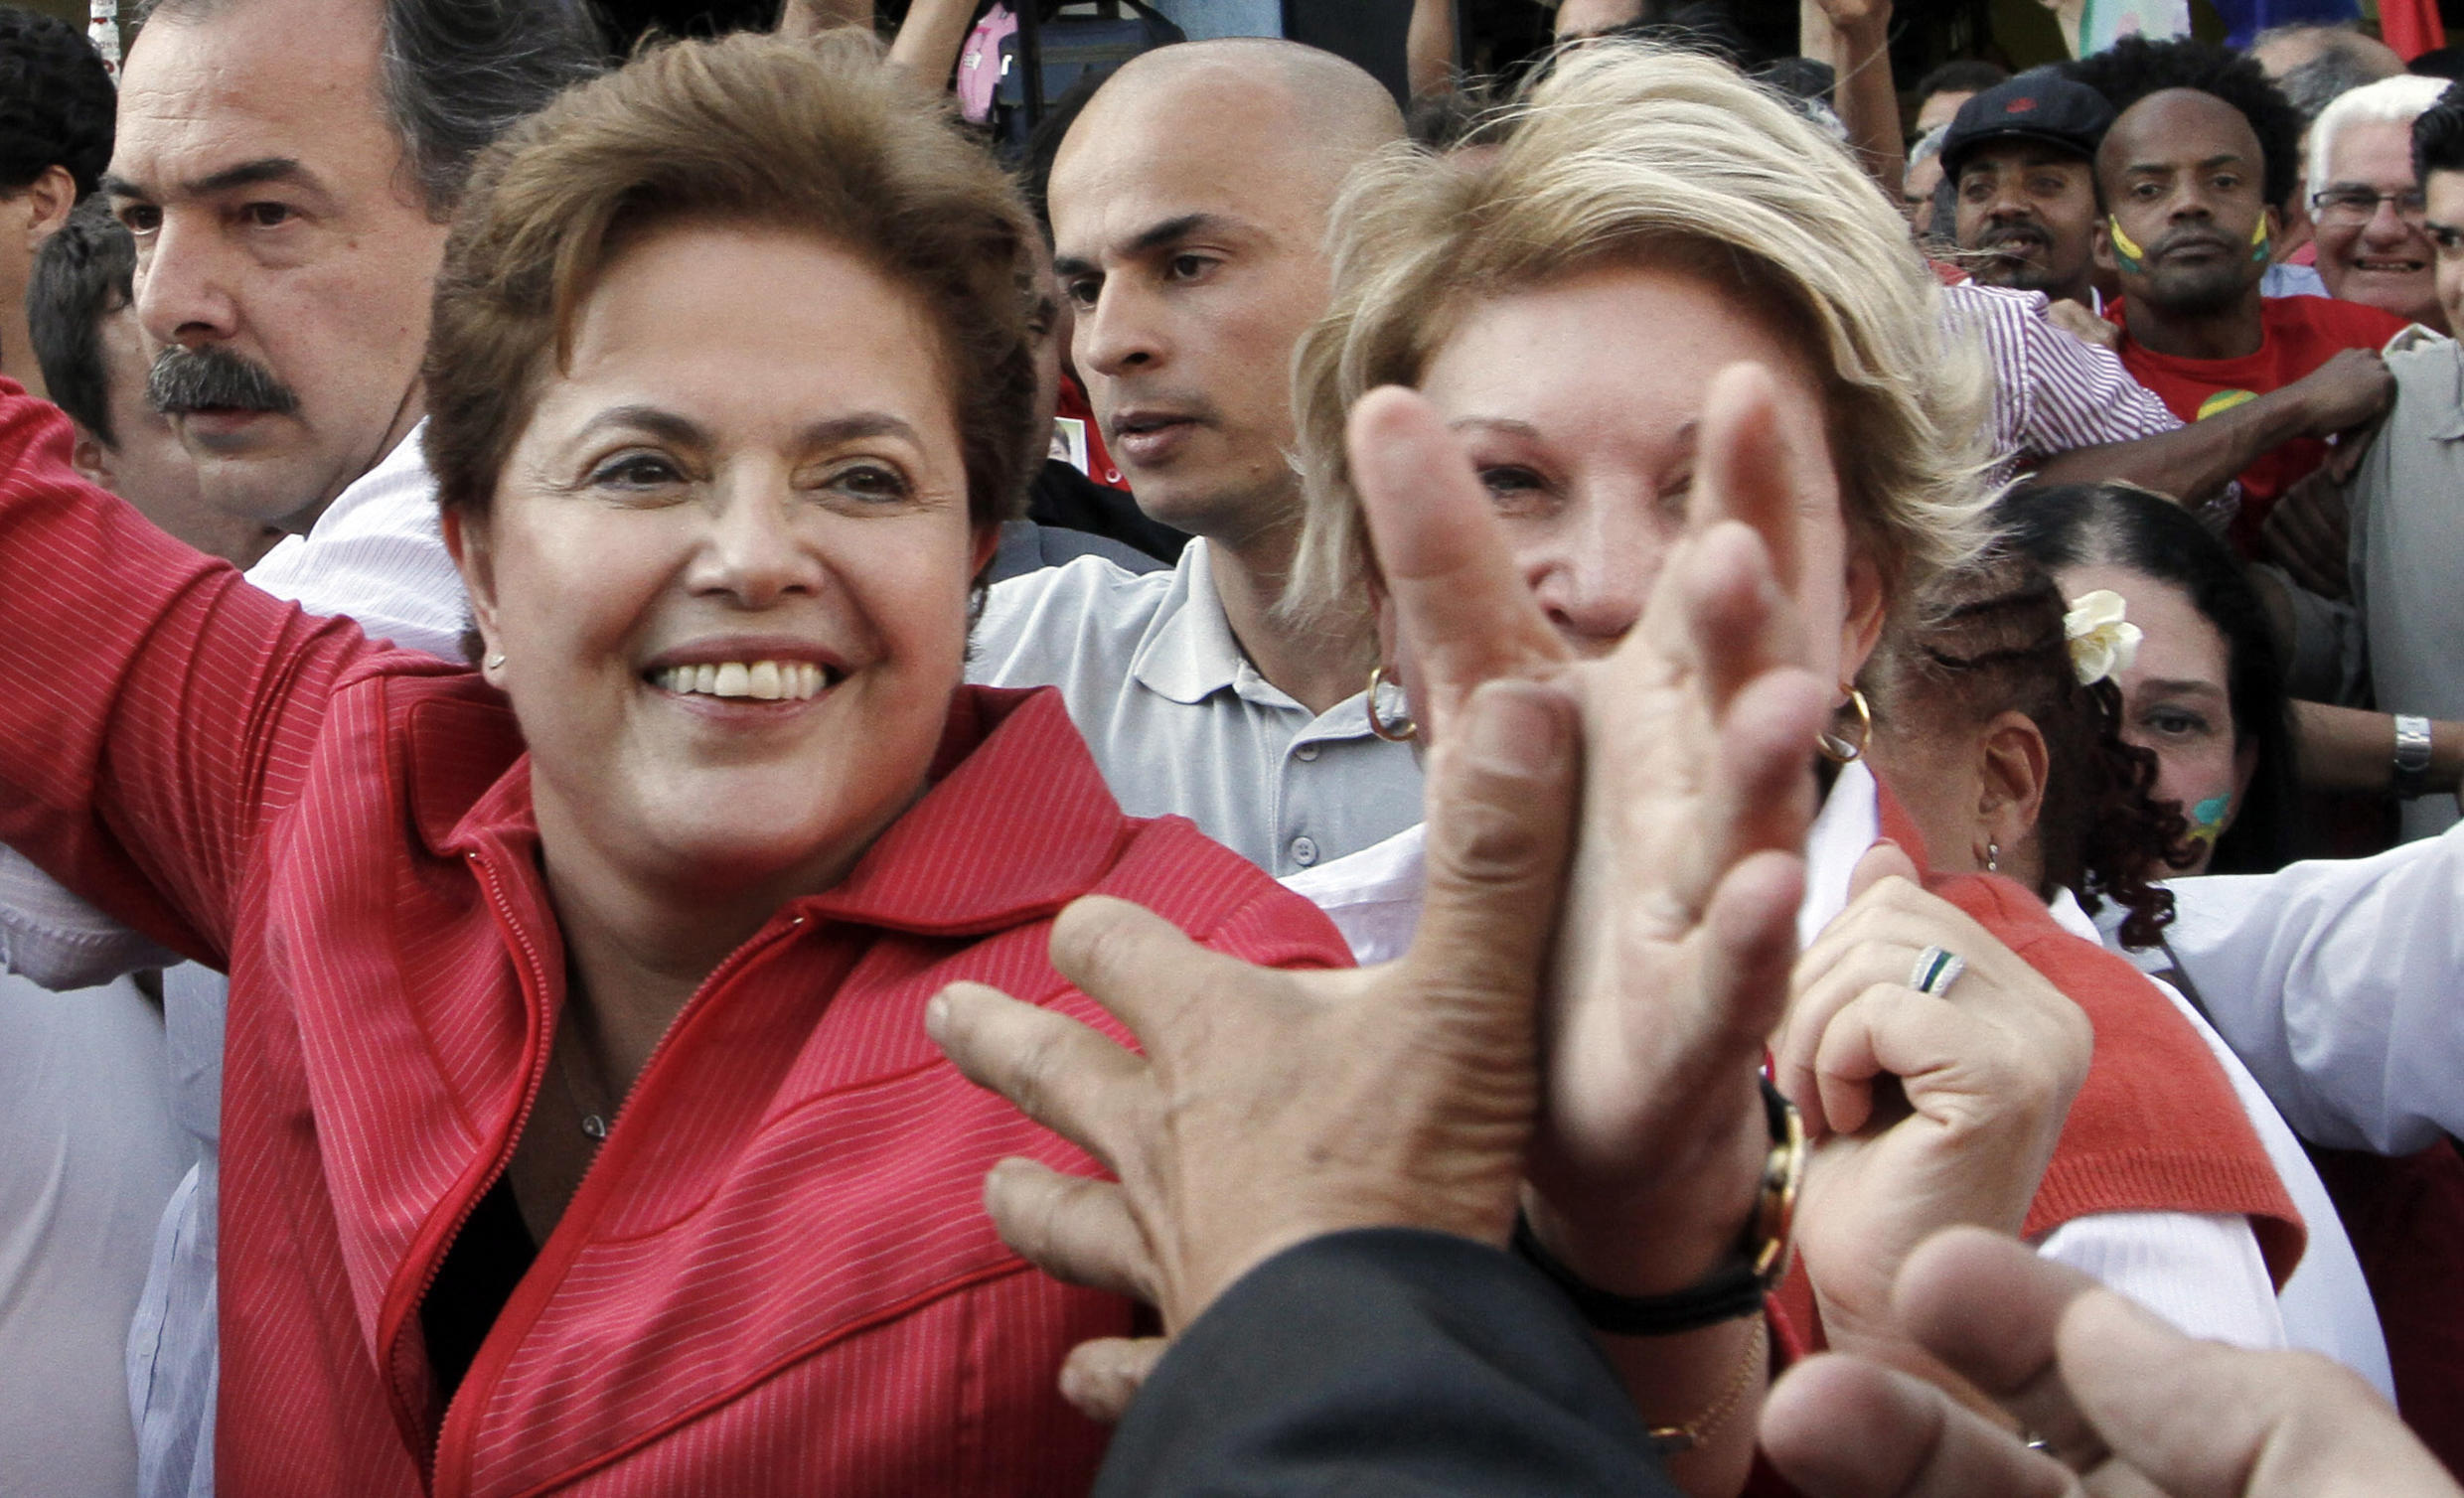 A candidata do PT, Dilma Rousseff .